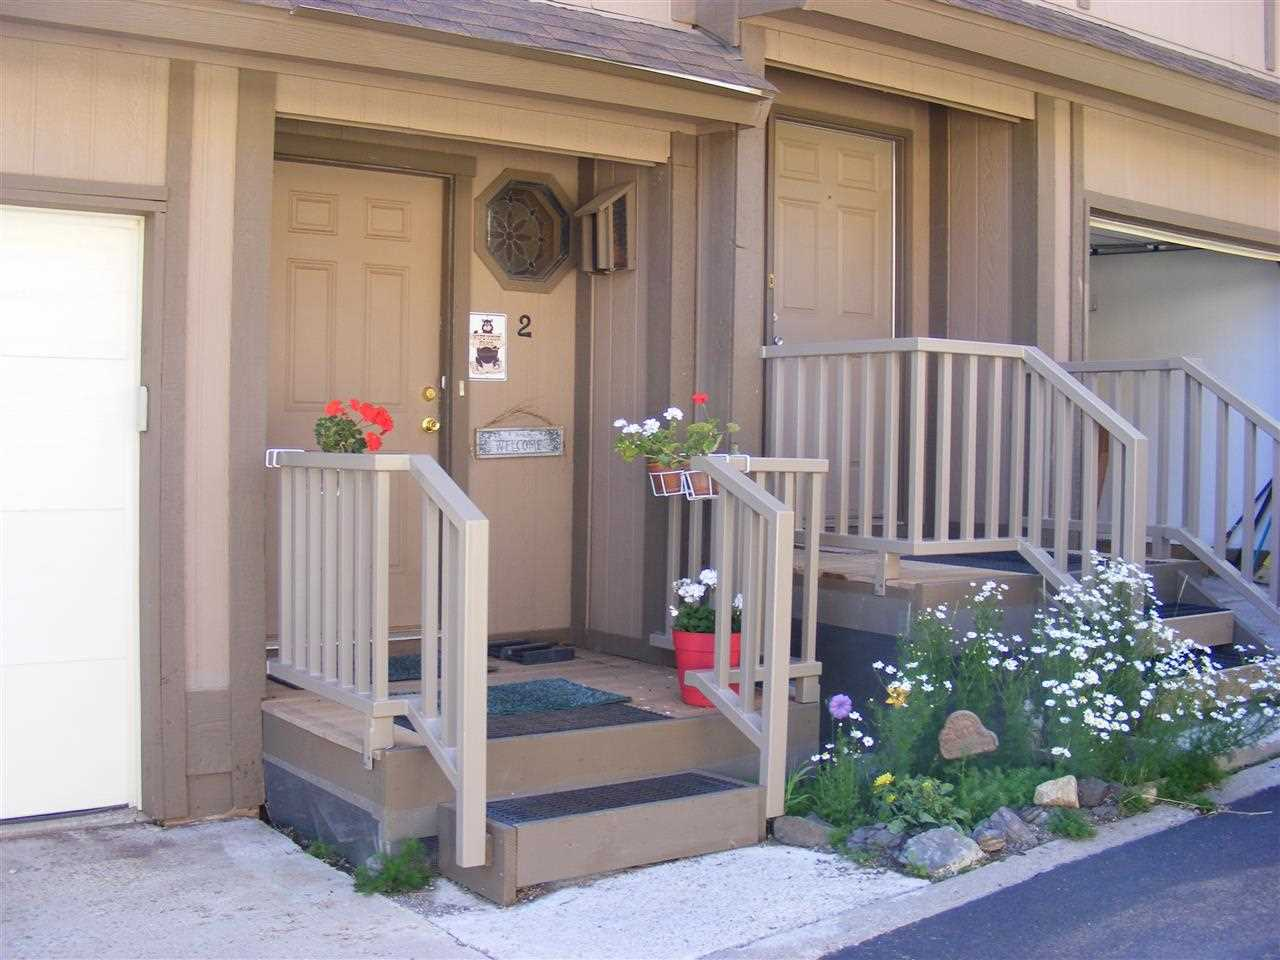 Welcome to Angel View Condo's.  Building 3, Unit 2 is a great location, removed from the busy roads, Vail and South Angel Fire Rd.  Yet a short walk to the pickup area for the shuttle to base area lifts.  Unit 2 is also located walking distance from restaurants, ski rental shops, bike shops, and Resort hotel.  The location is also ideal for renting during the ski season.  Unit comes furnished and ready to move in or rent.